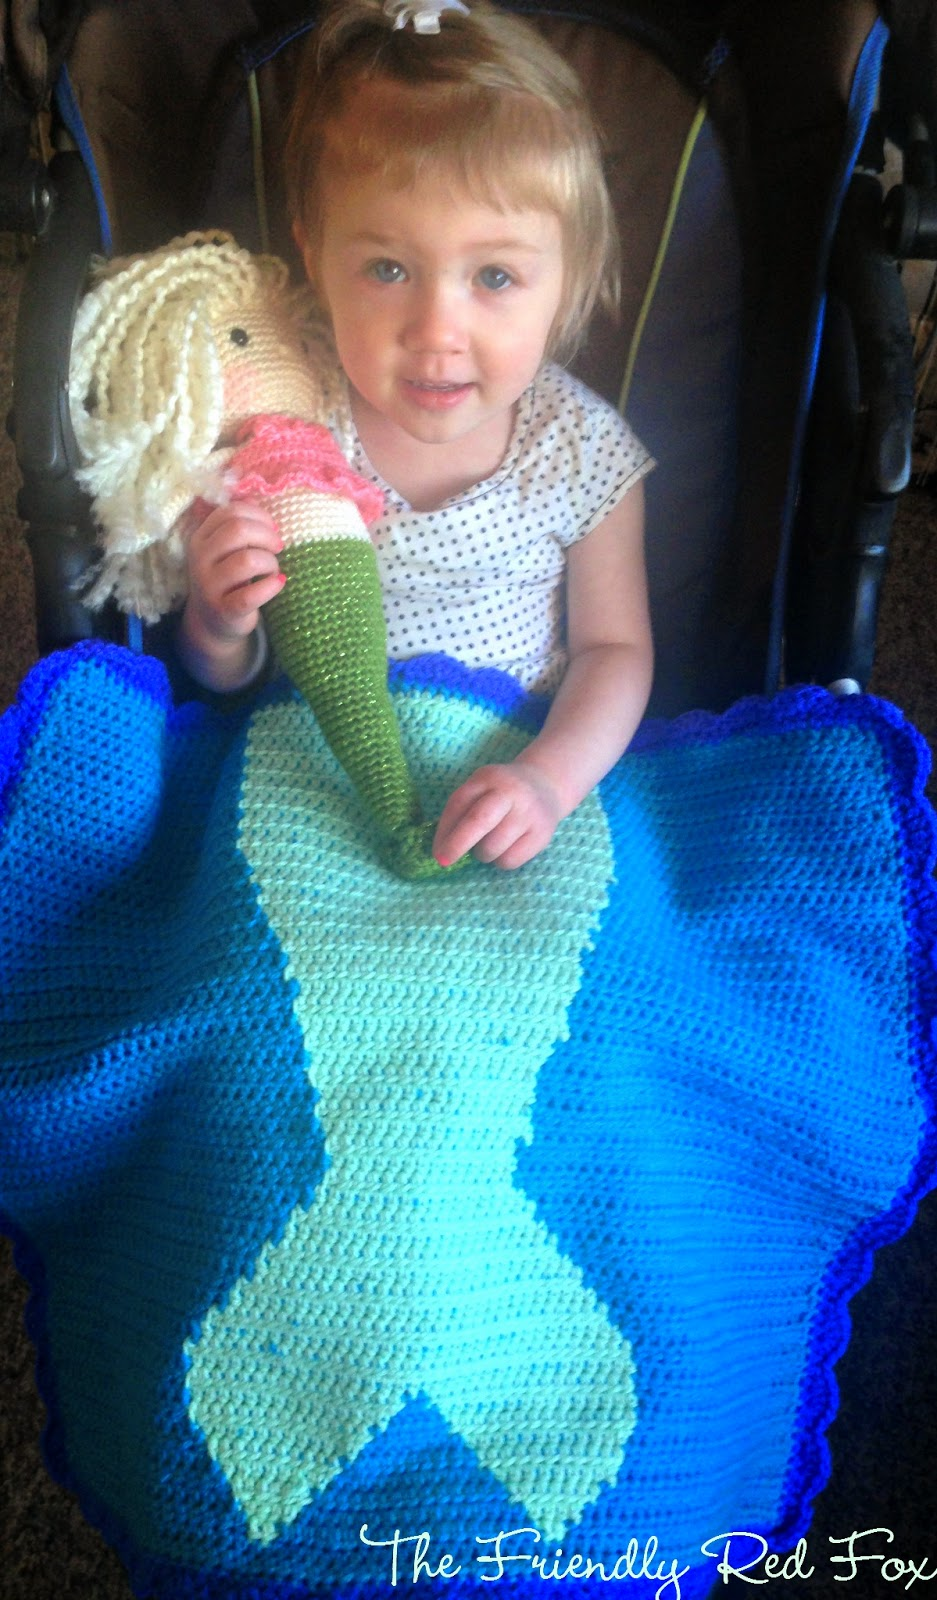 Mini Owl Amigurumi Pattern : Free Crochet Mermaid Tail Blanket Pattern - The Friendly ...